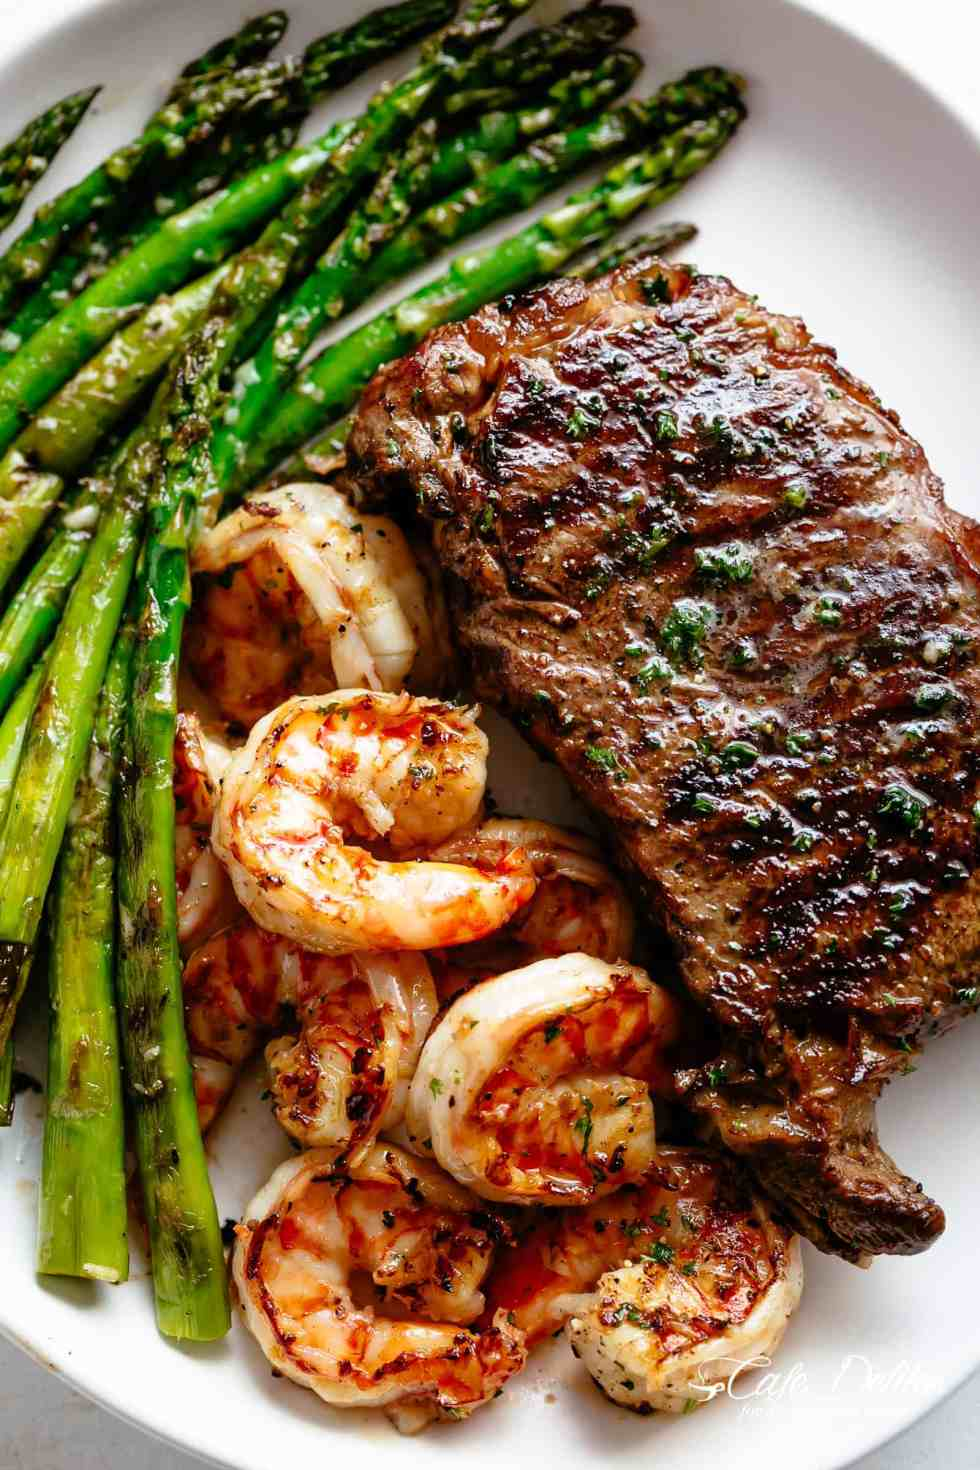 Grilled Steak & Shrimp | cafedelites.com